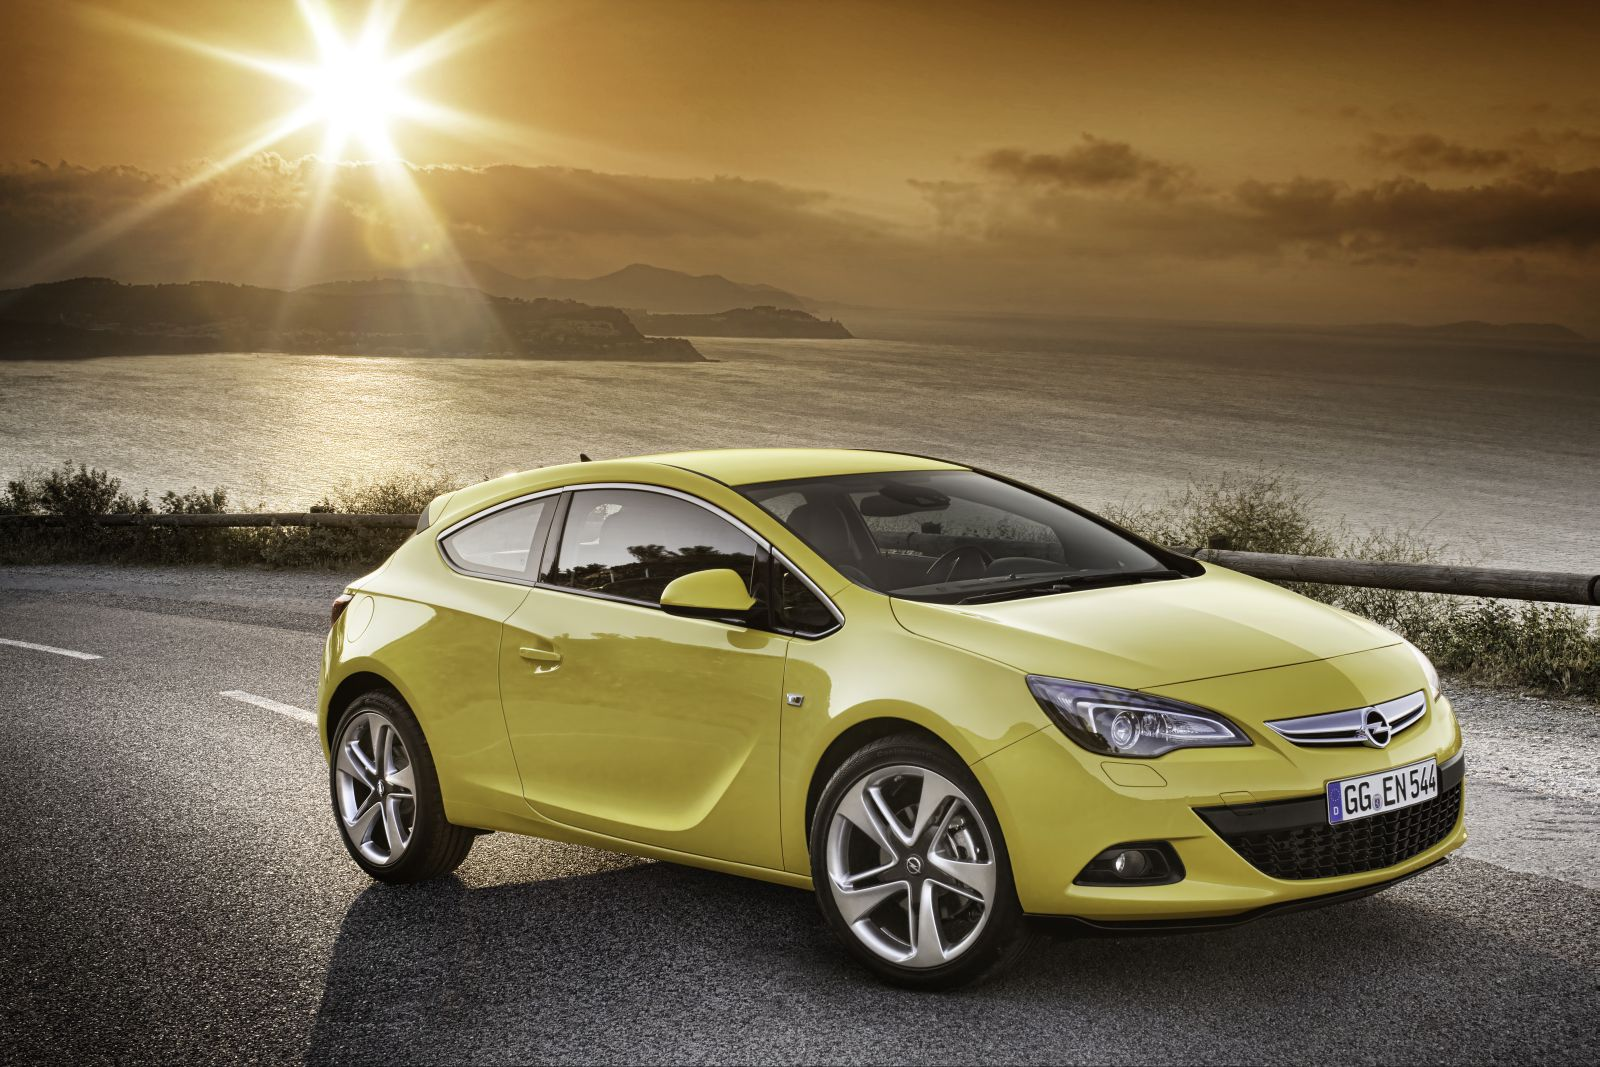 2016 Opel Astra h gtc - pictures, information and specs ...